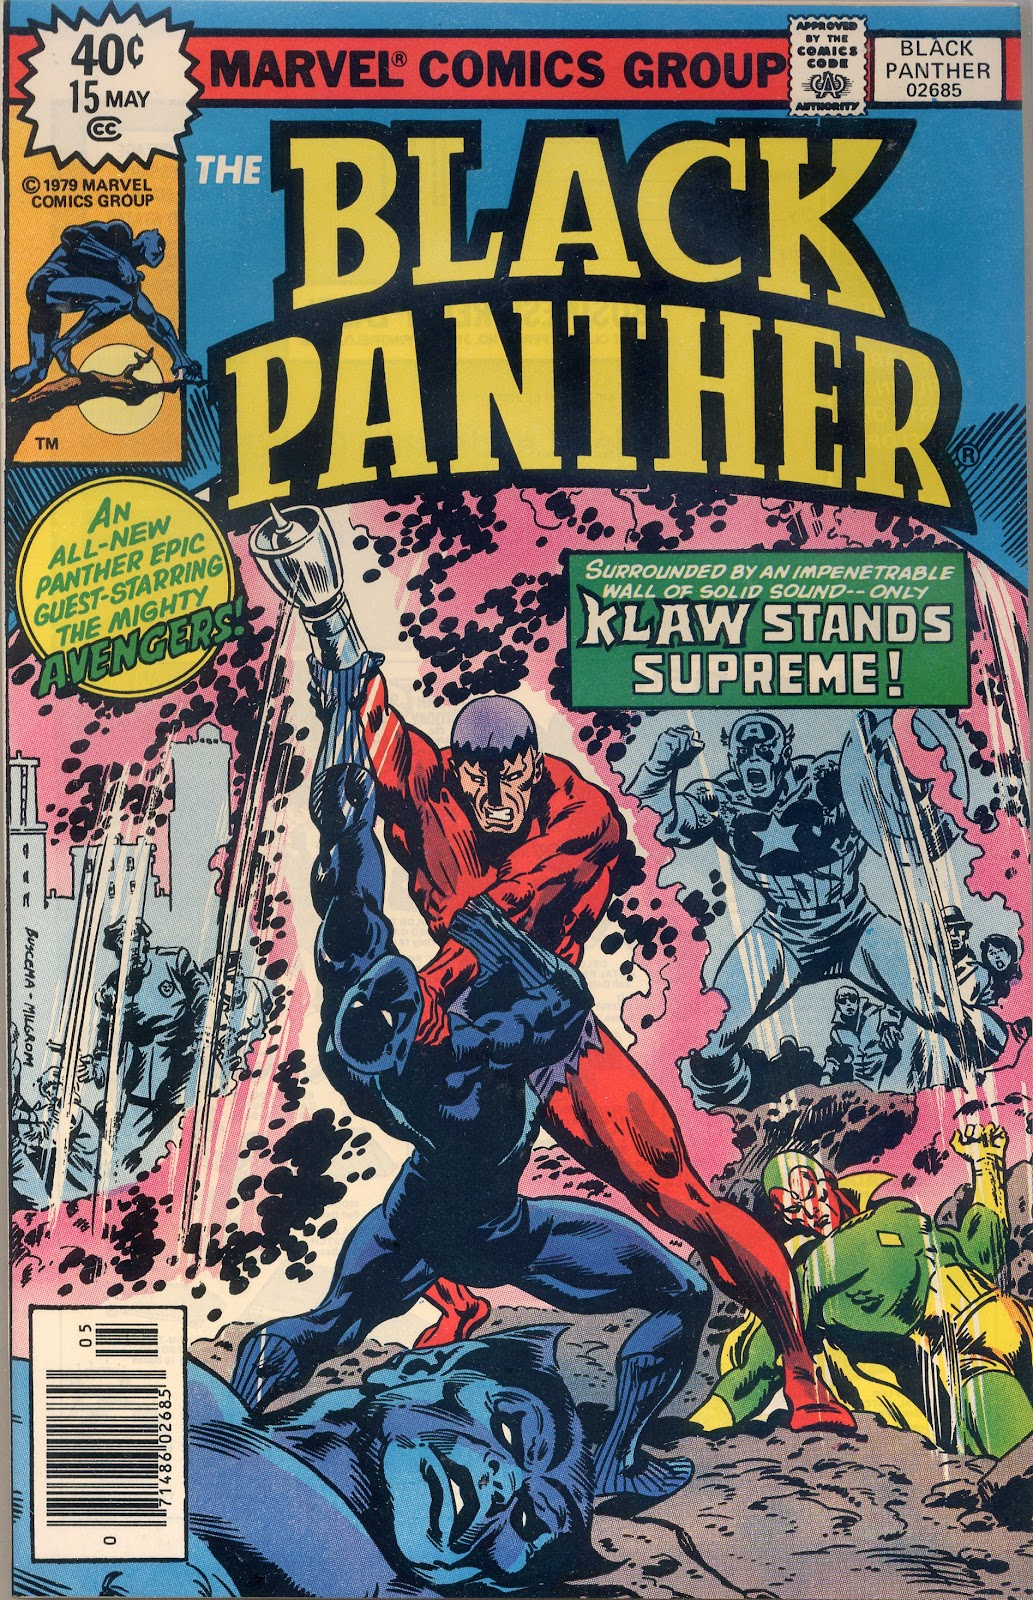 Black Panther (1977) issue 15 - Page 1